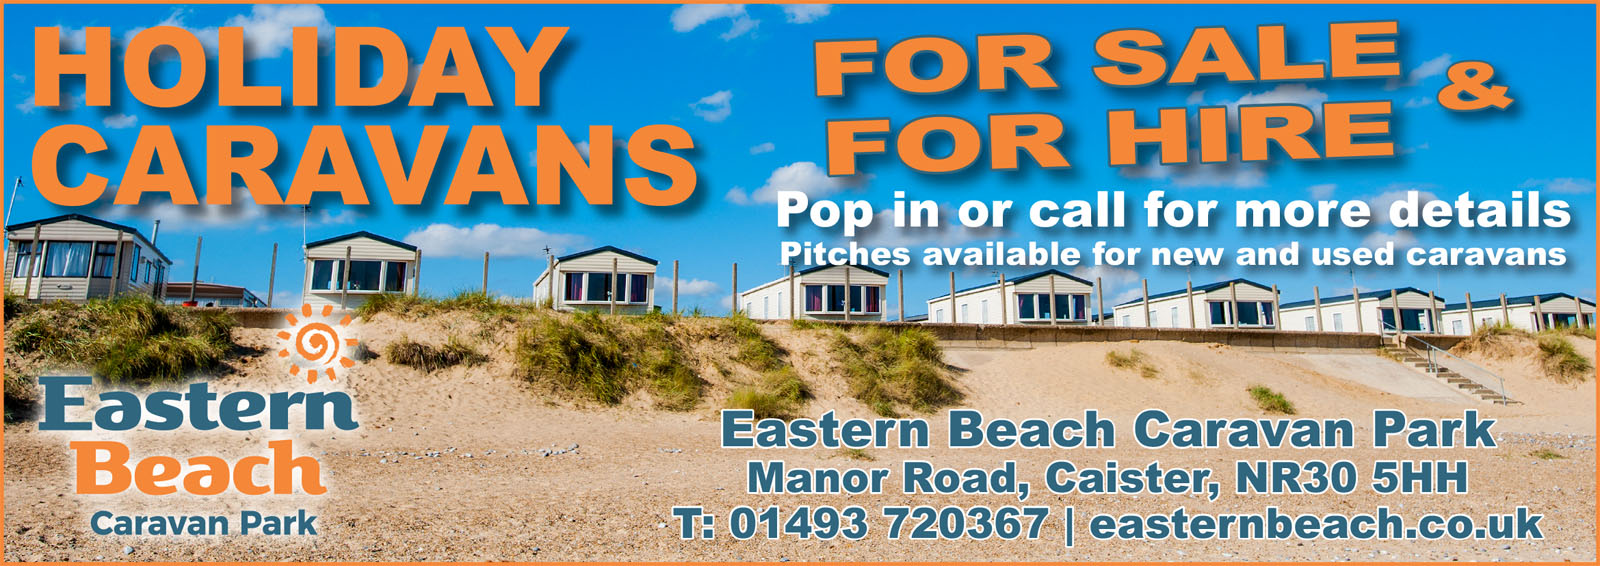 2019 Caravans For Sale Poster